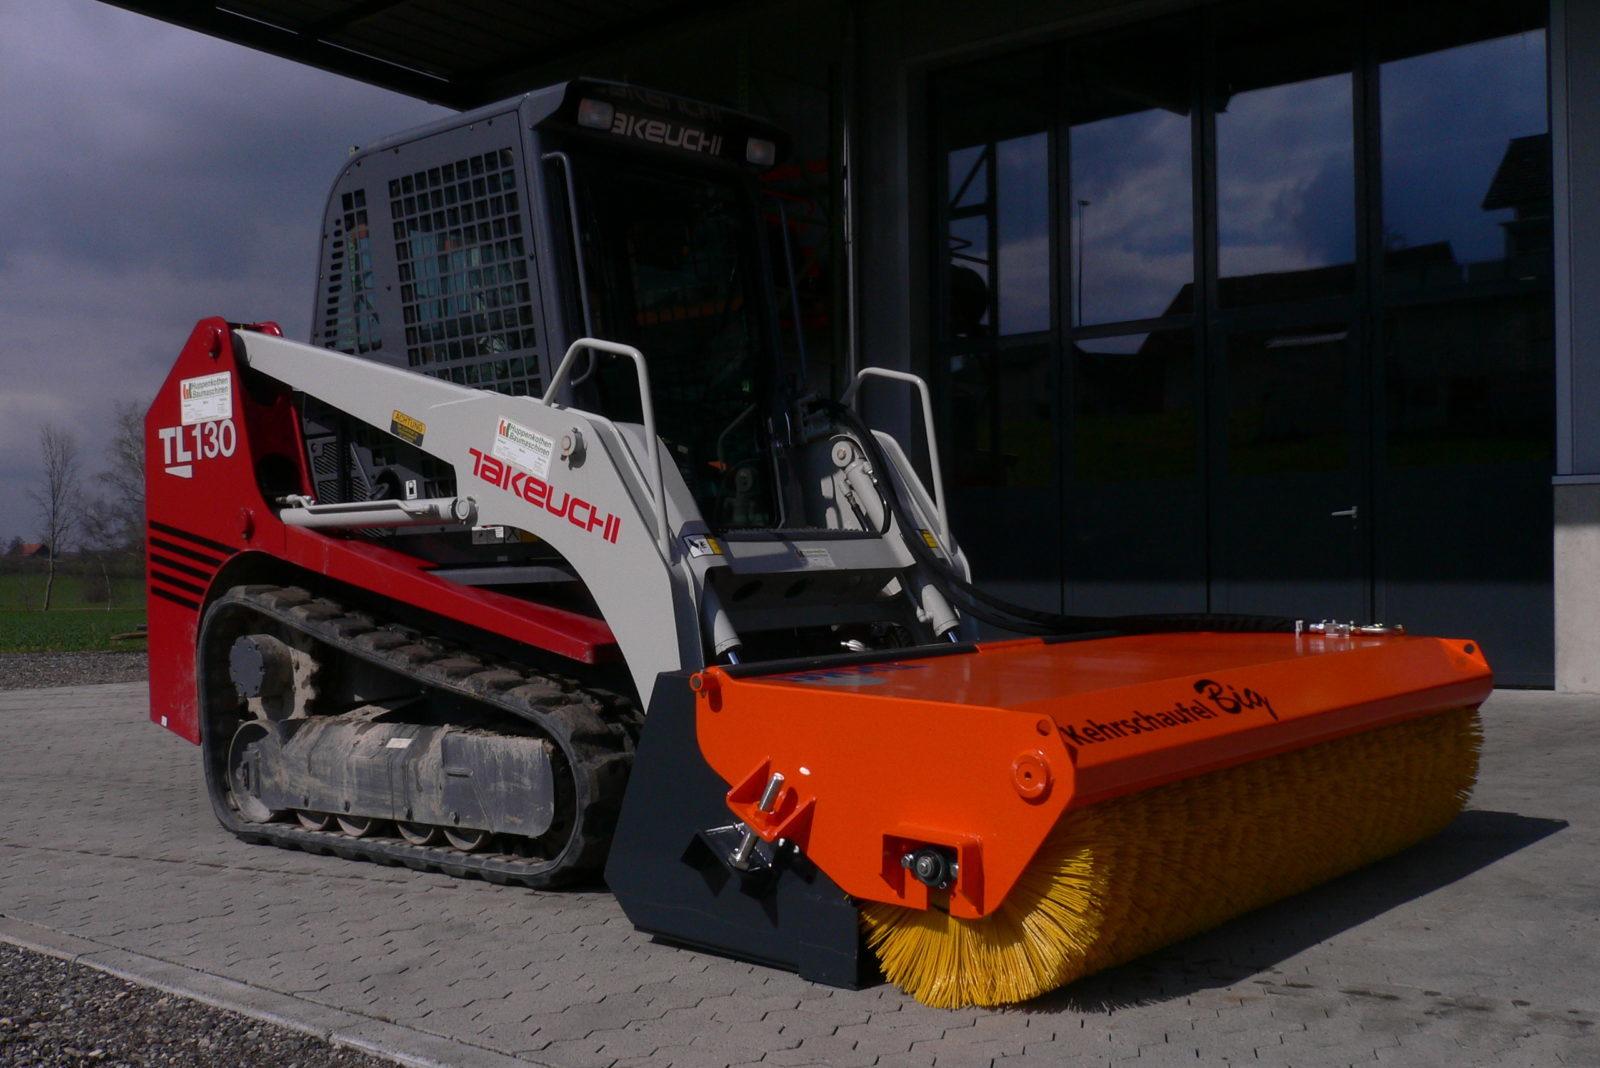 Tuchel Sweep BIG sweeper attachment for loaders, excavators, tractors and skid steers